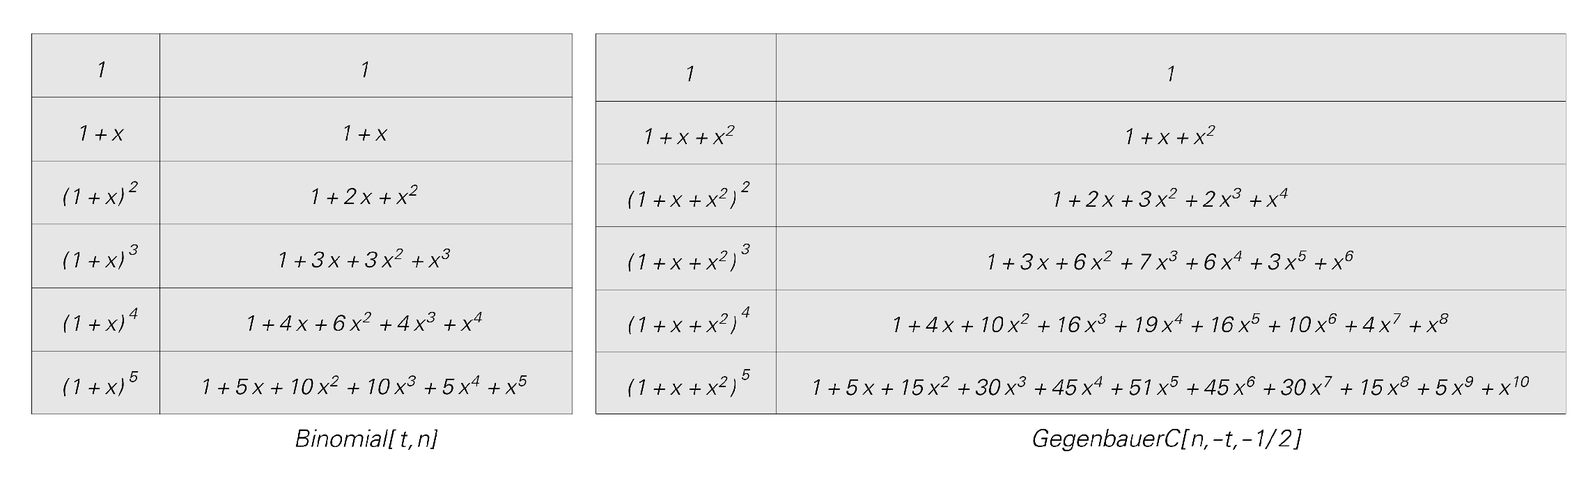 Algebraic representations of the patterns on the facing page